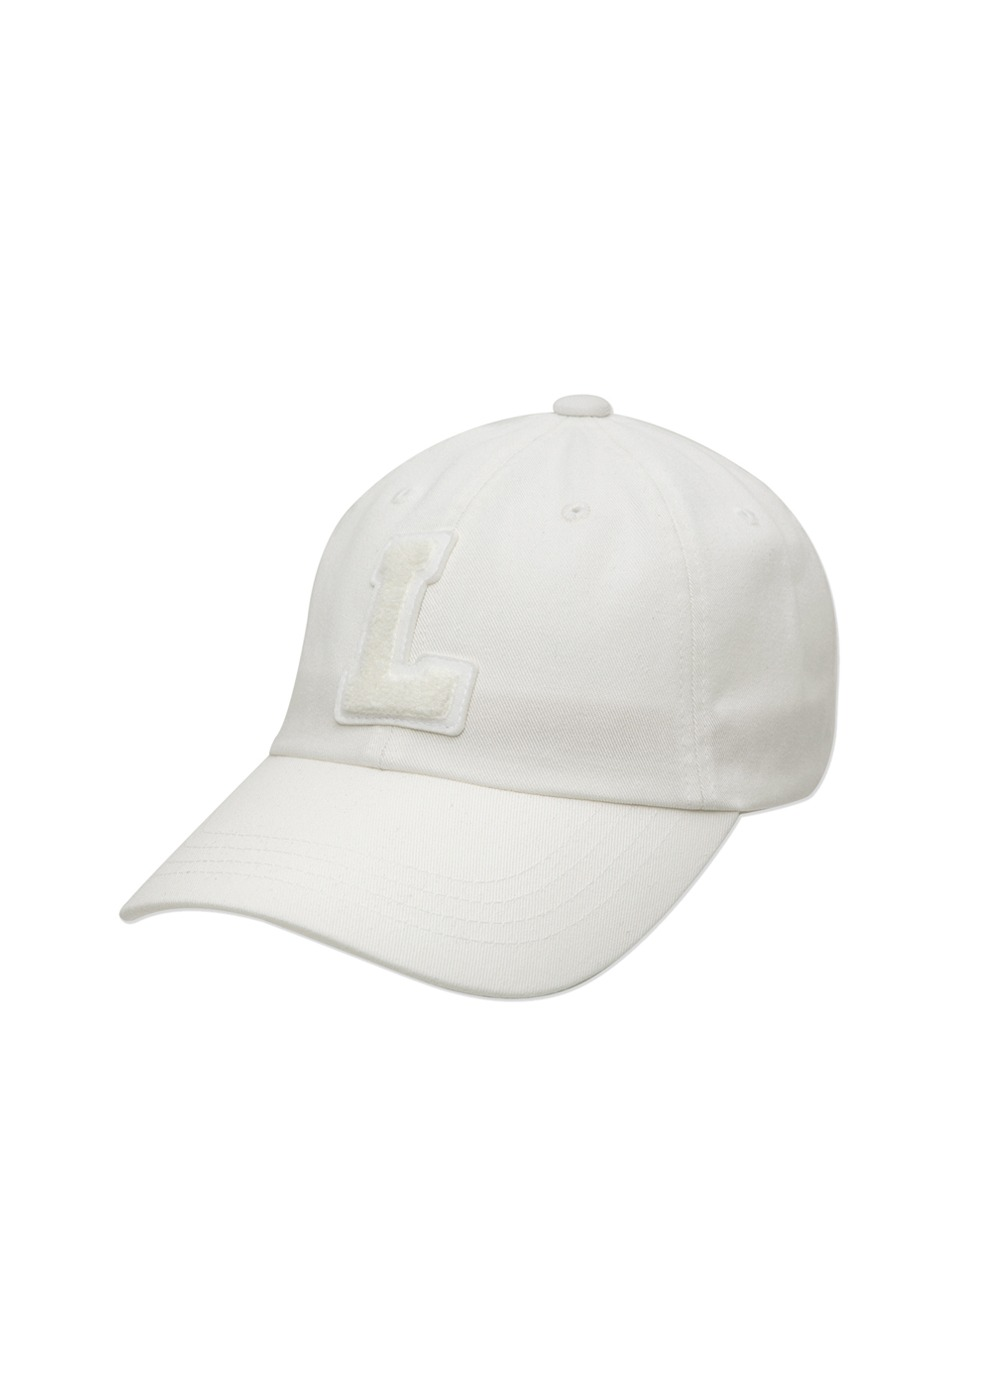 LMC L BOUCLE 6 PANEL CAP cream